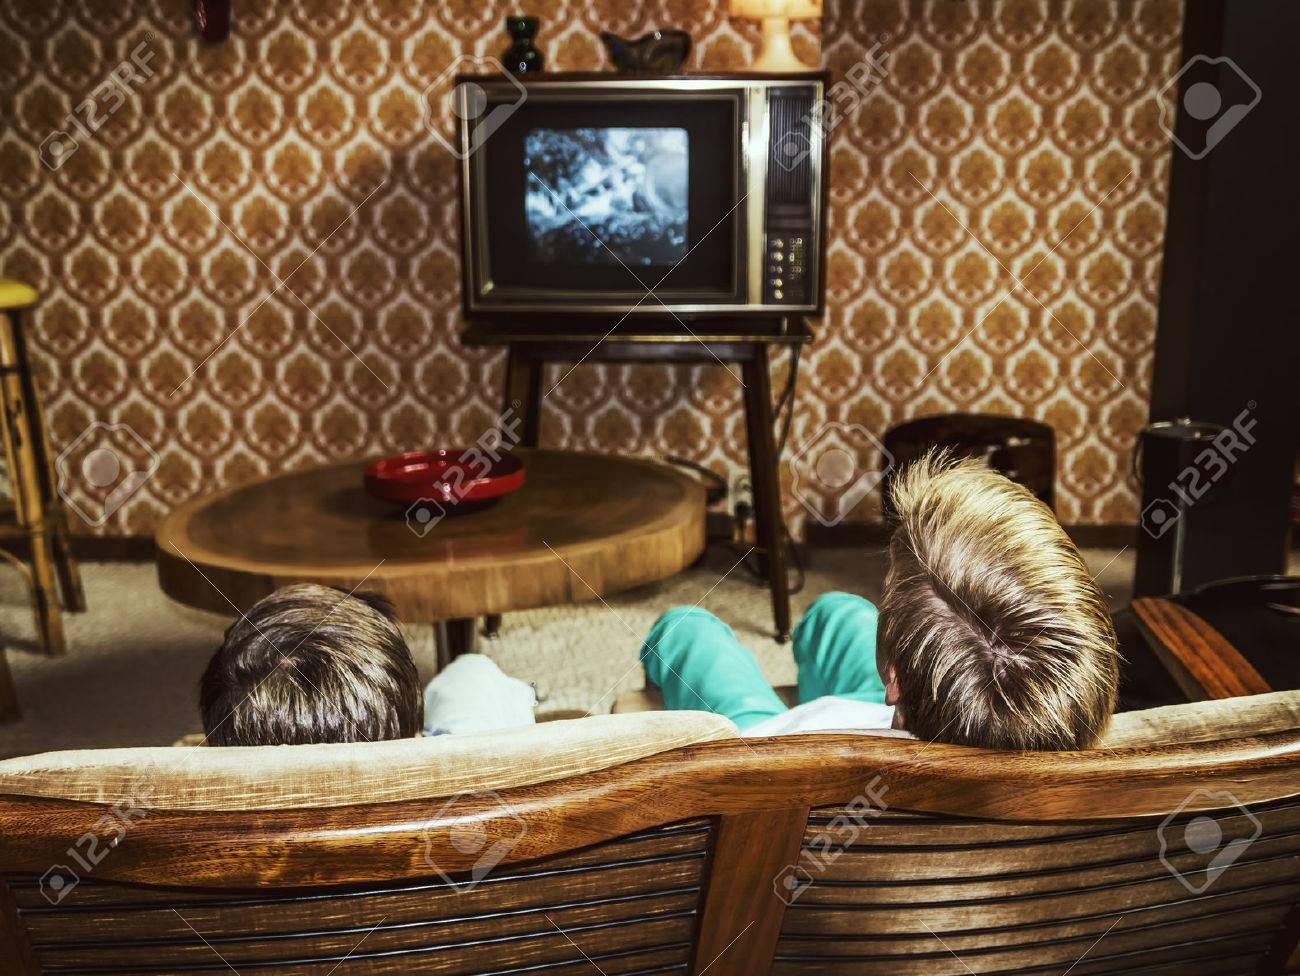 two boys watching television at home in 50's style, shot from behind - 53551237